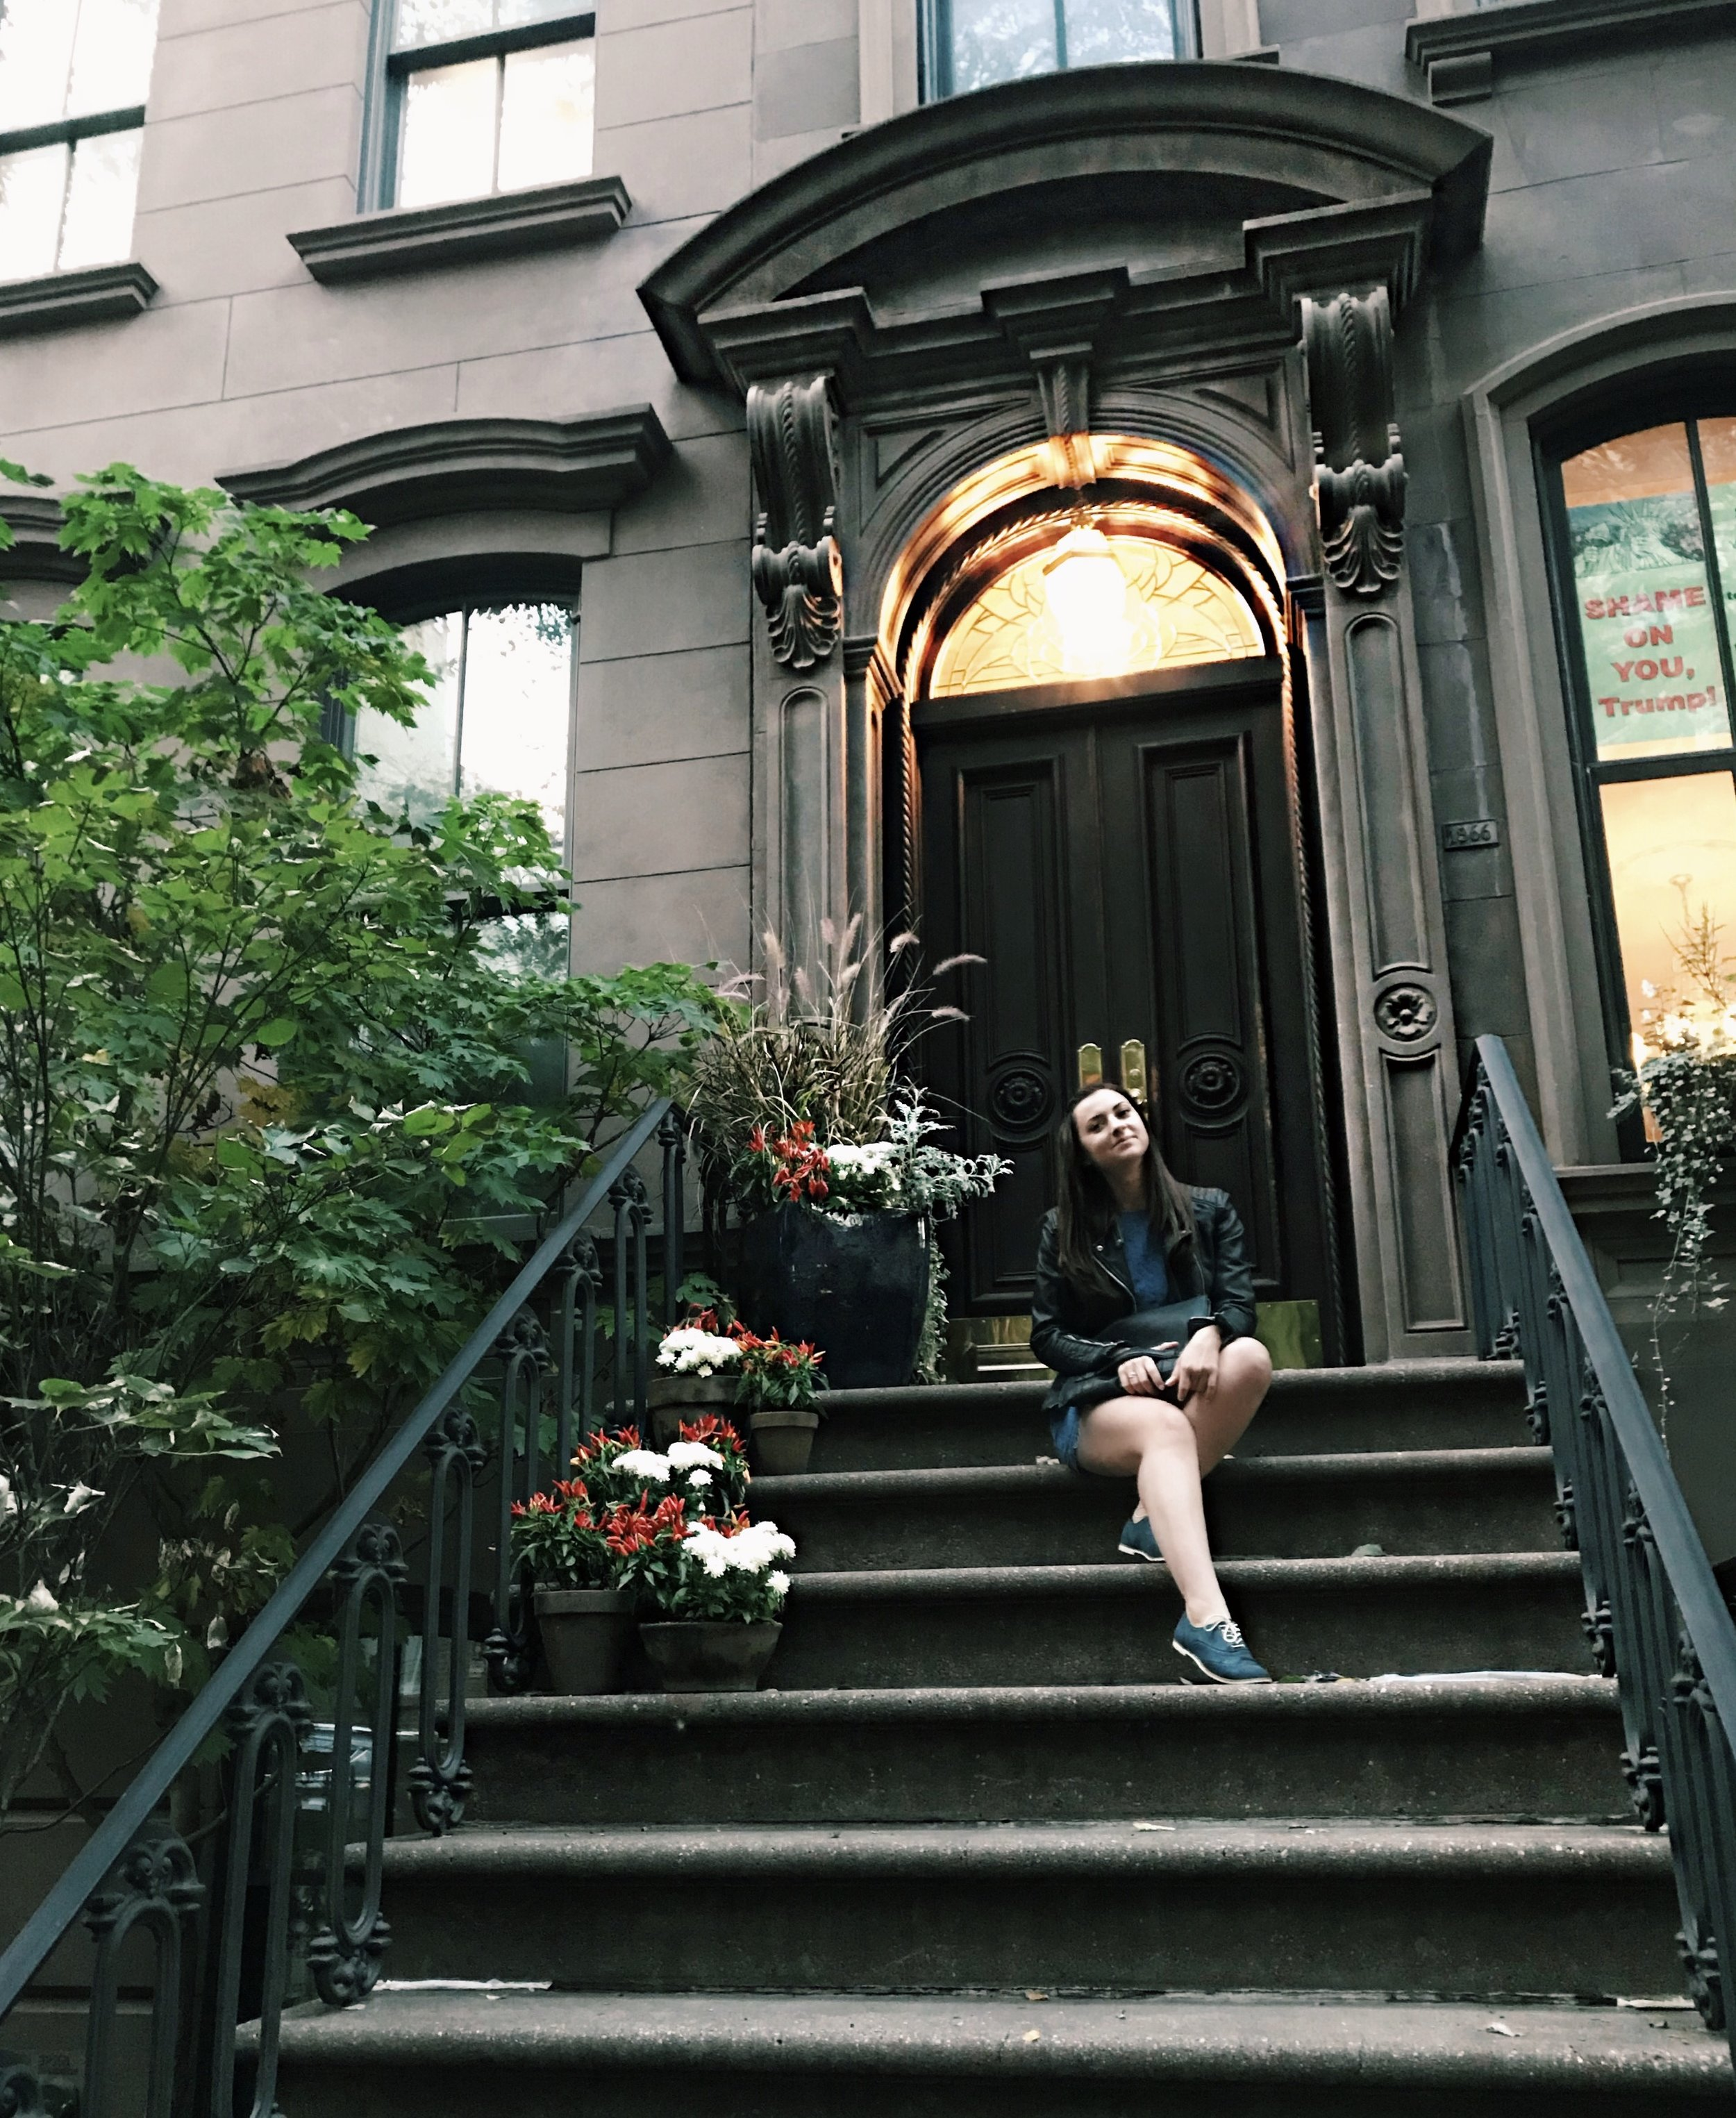 At Sex and The City apartment.